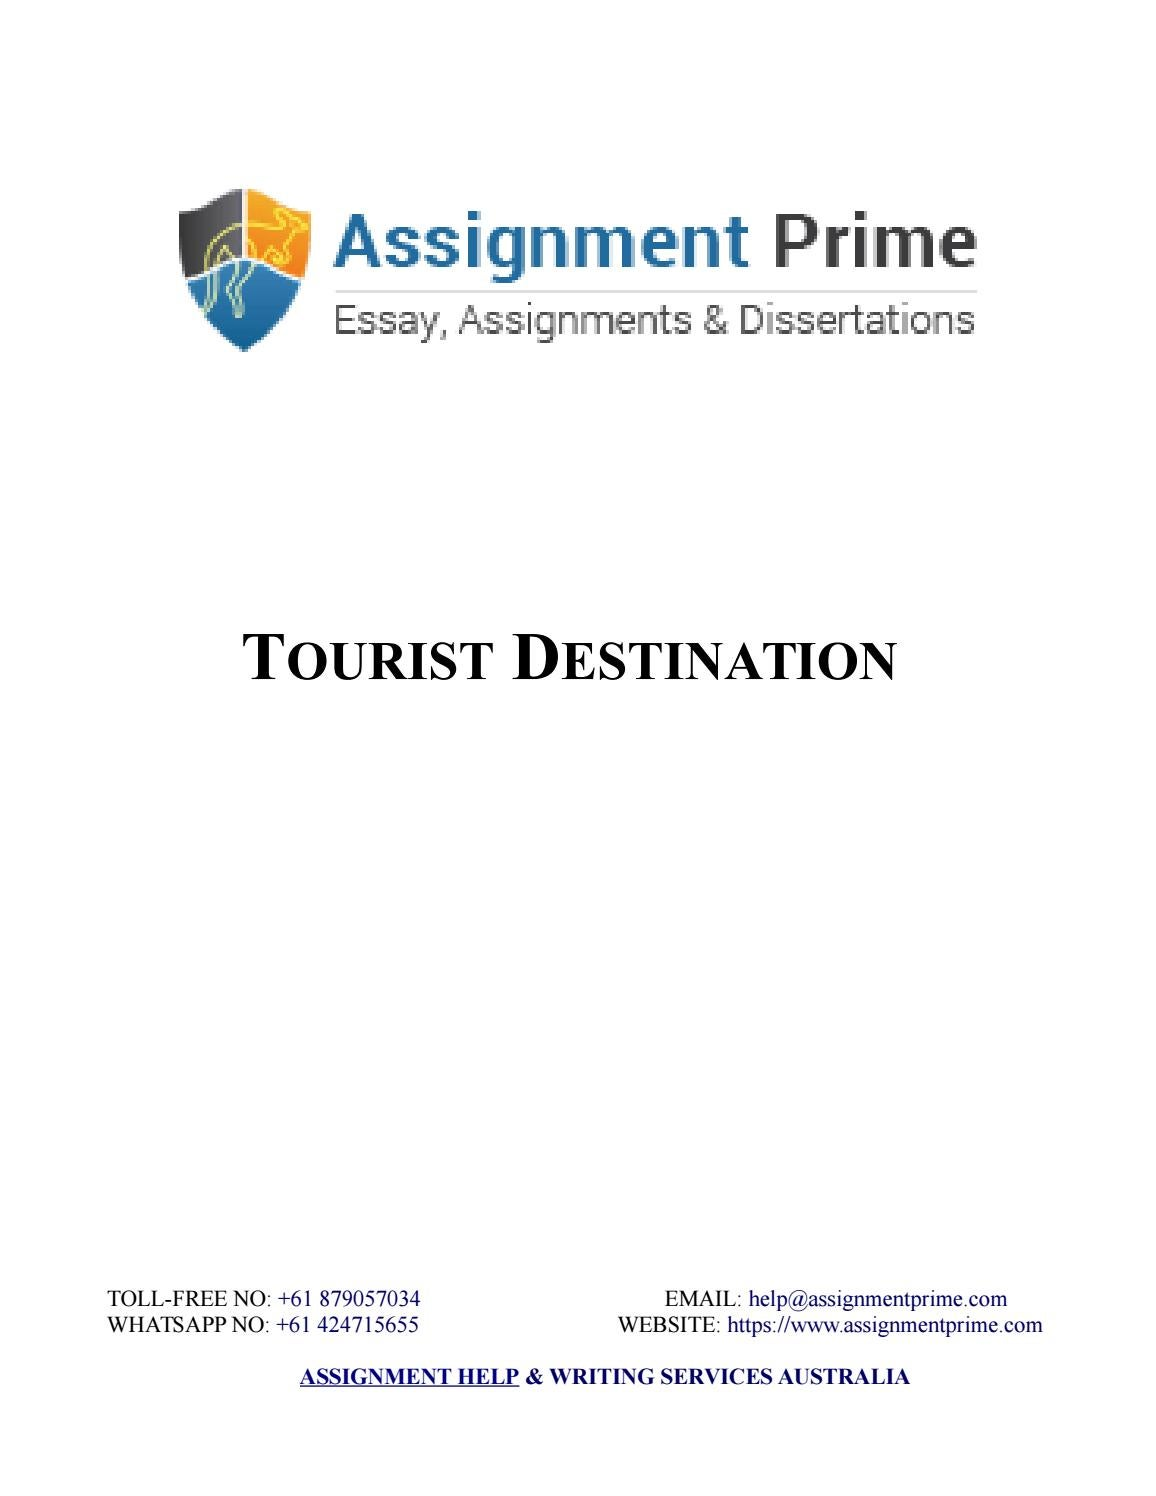 sample assignment on tourist destination assignment prime sample assignment on tourist destination assignment prime by adam jackson